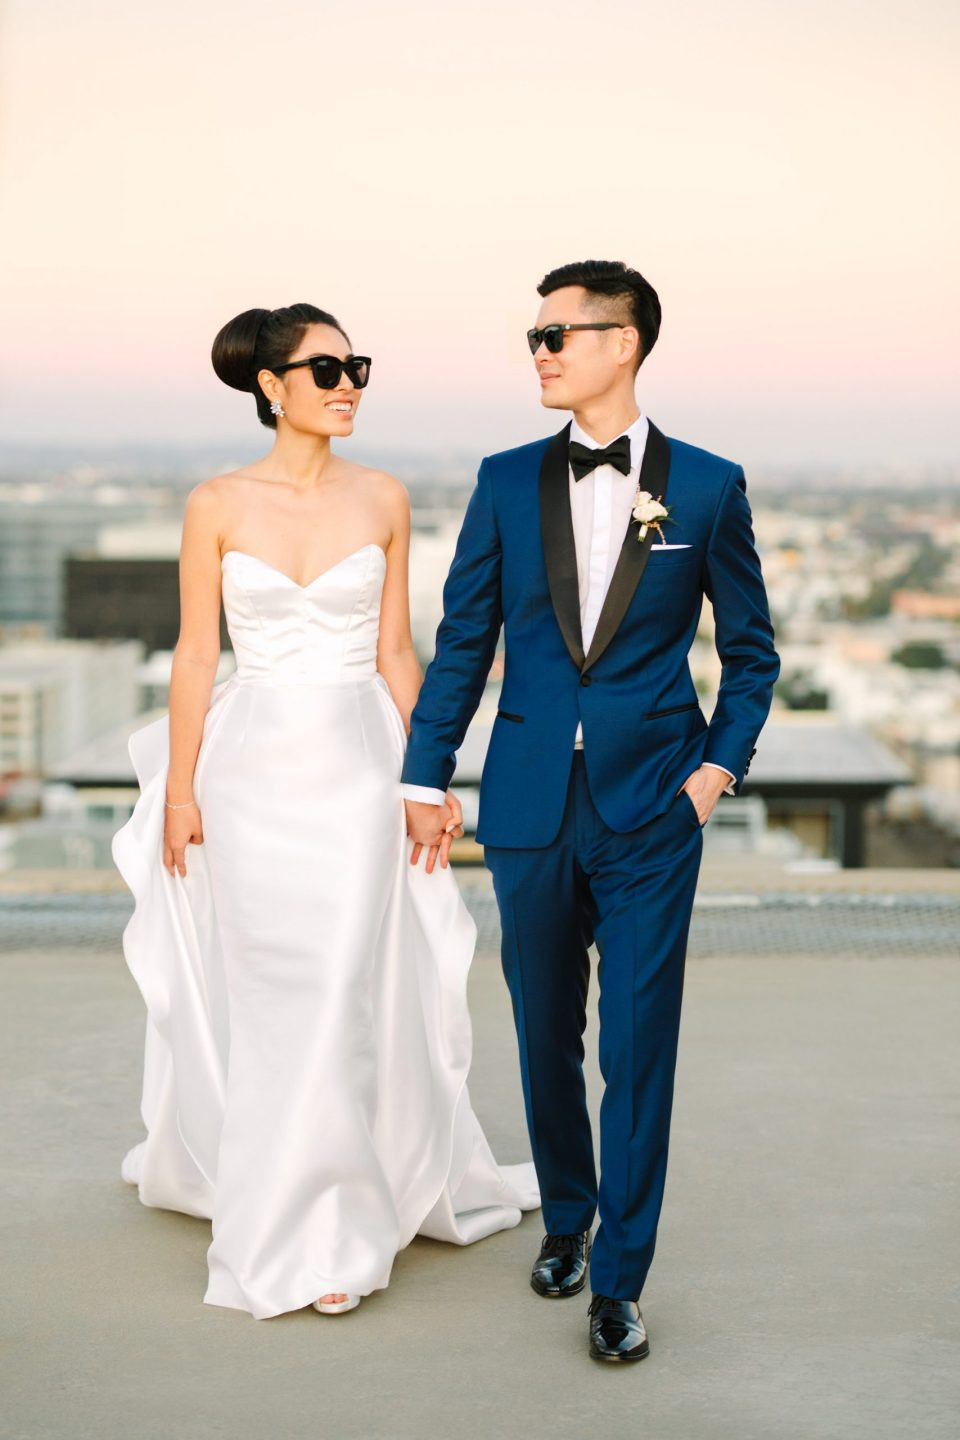 Bride and groom walking in sunglasses on Los Angeles www.marycostaweddings.com